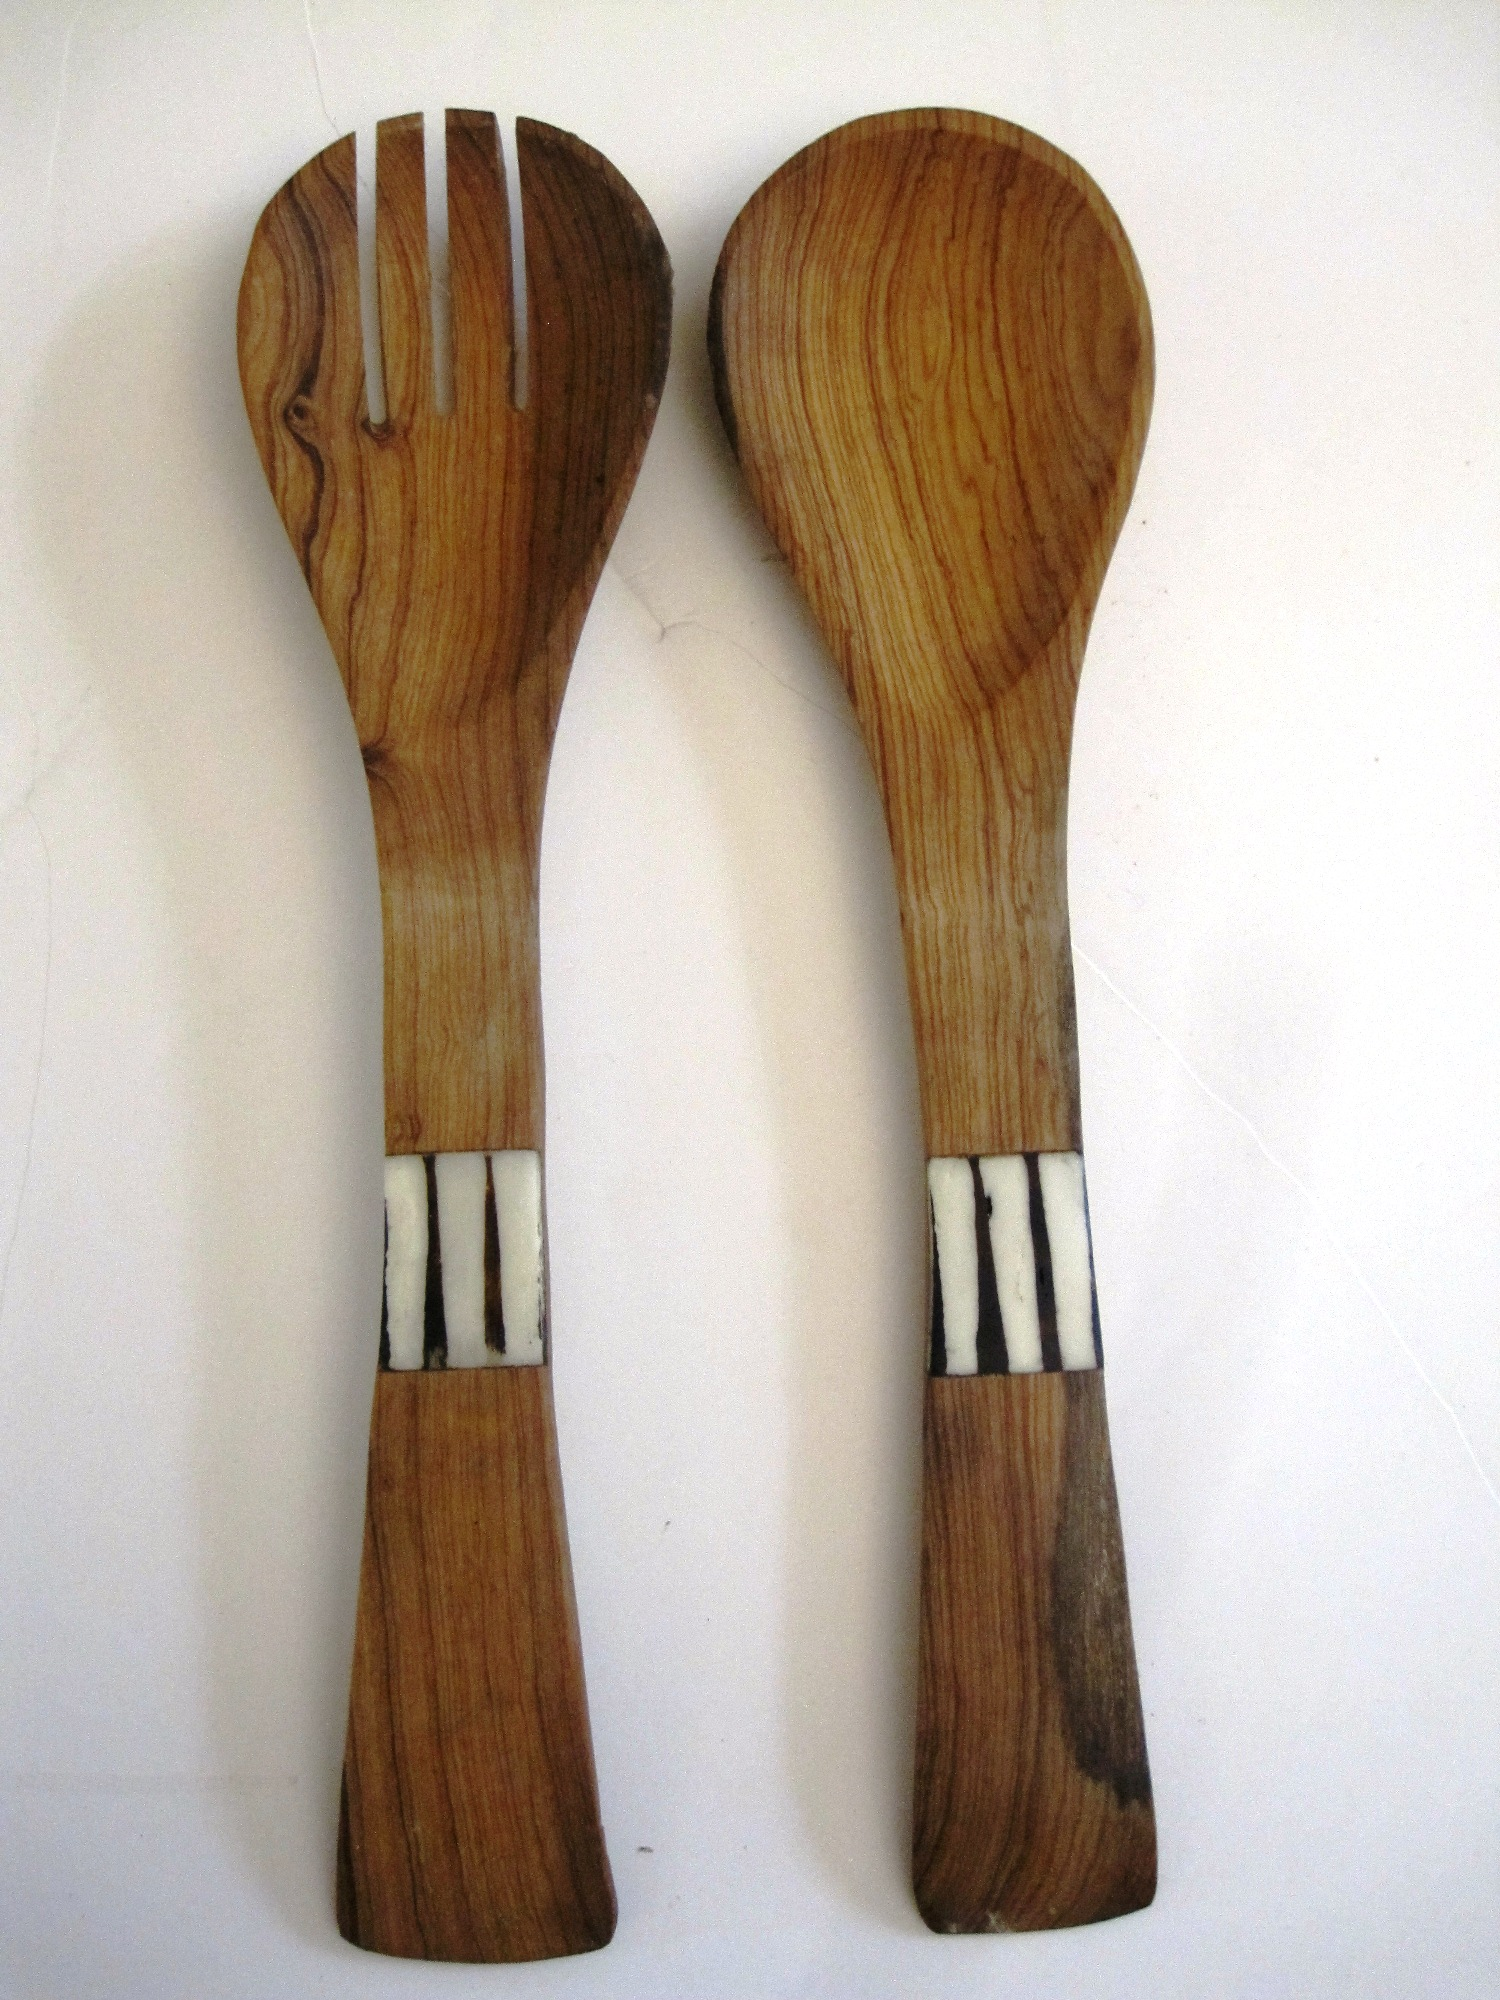 Bone/Wood Salad Server Server Set #001